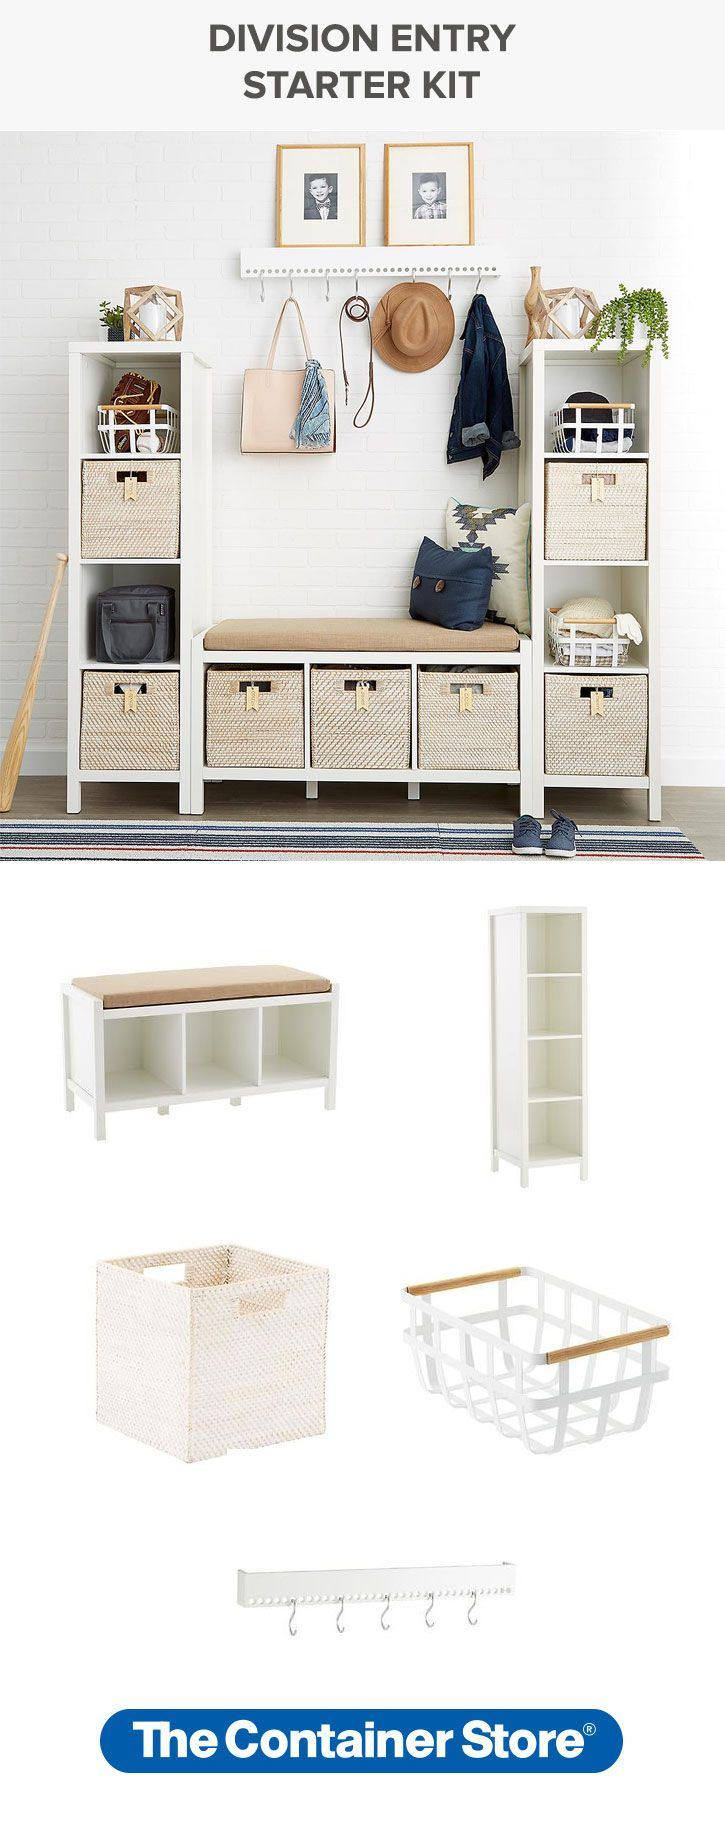 It's easy to get your entryway in order in one fell swoop with our Division Entry Starter Kit. It includes everything from our Division Storage Bench and Towers to baskets, cubes and a hook rack!